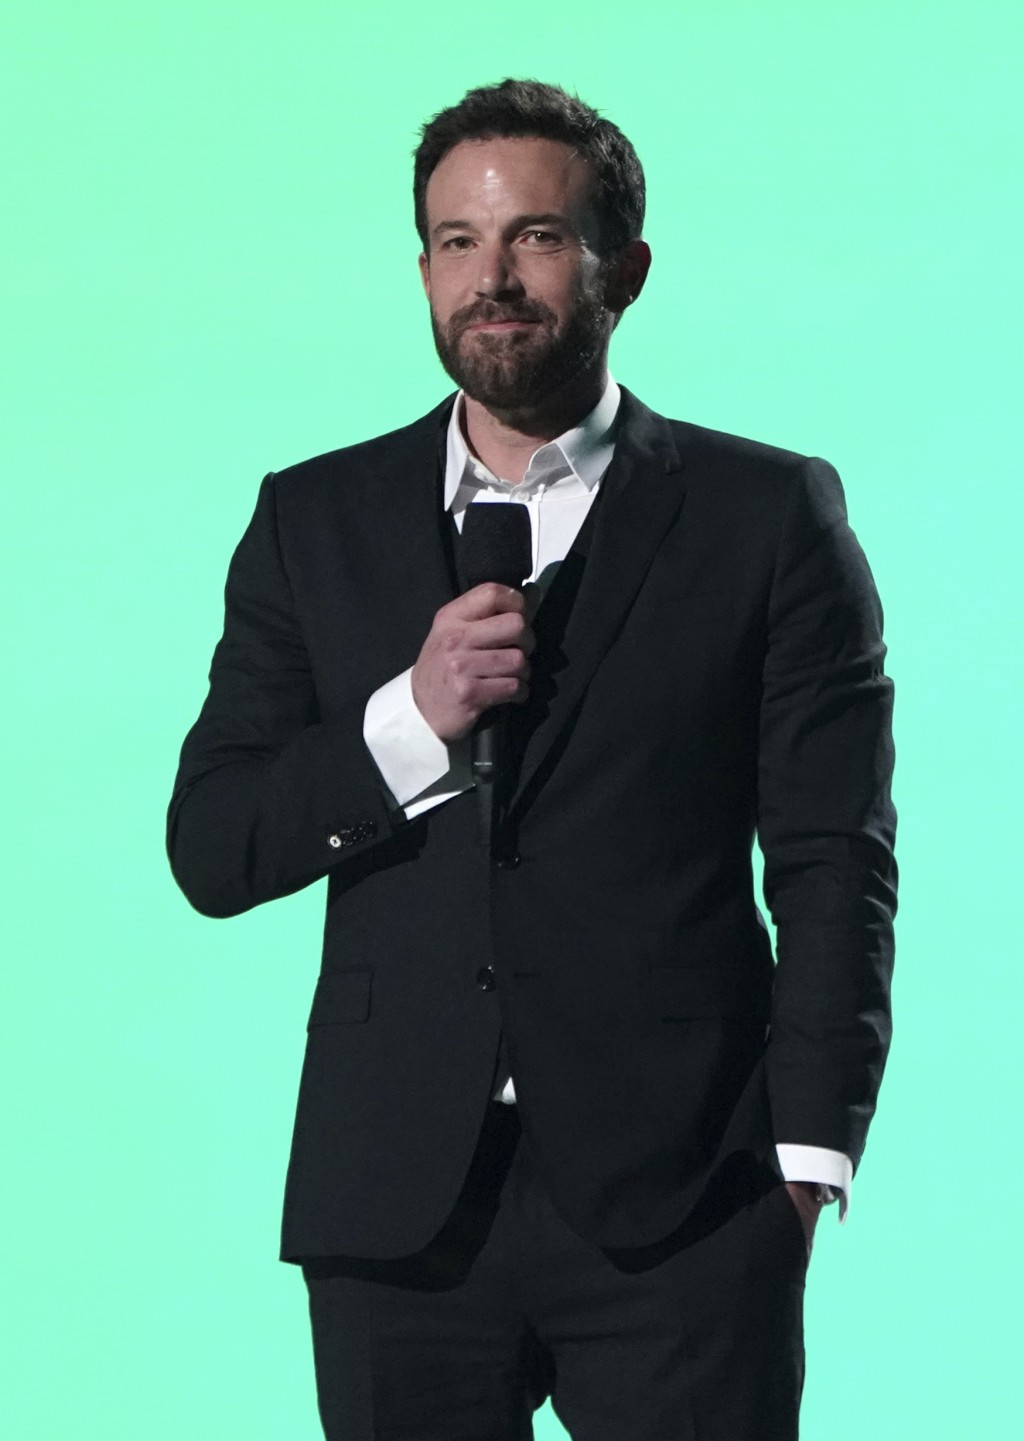 """Ben Affleck speaks at Vax Live: The Concert to Reunite the World"""" on Sunday, May 2, 2021, at SoFi Stadium in Inglewood, Calif. (Photo by Jordan Straus..."""